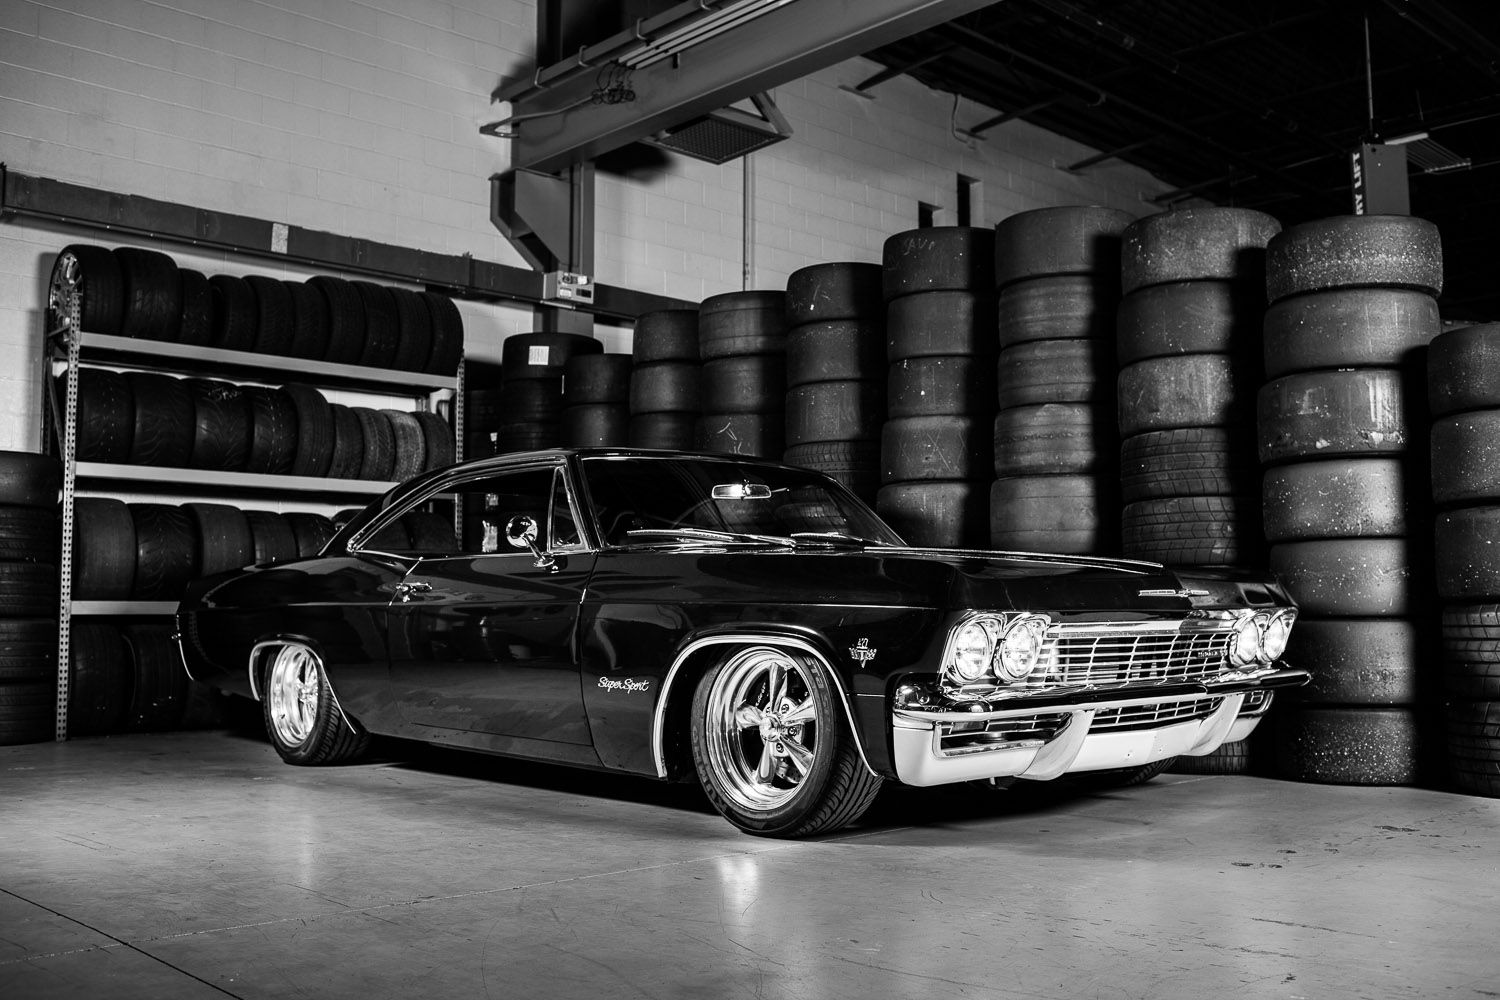 blackdog 427 powered 39 65 impala bad ass classic cars pinterest super sport cars and chevrolet. Black Bedroom Furniture Sets. Home Design Ideas